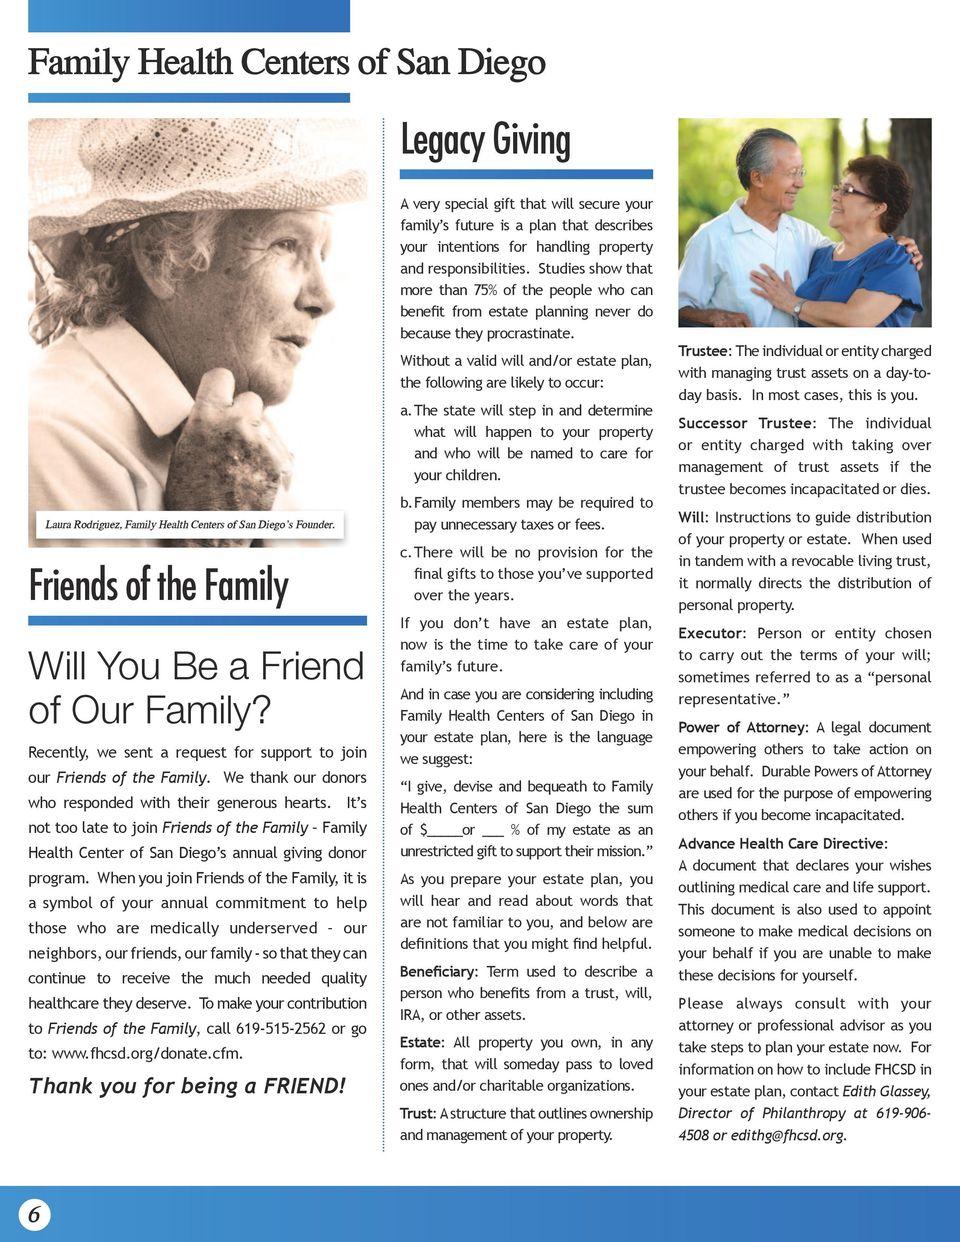 It s not too late to join Friends of the Family Family Health Center of San Diego s annual giving donor program.